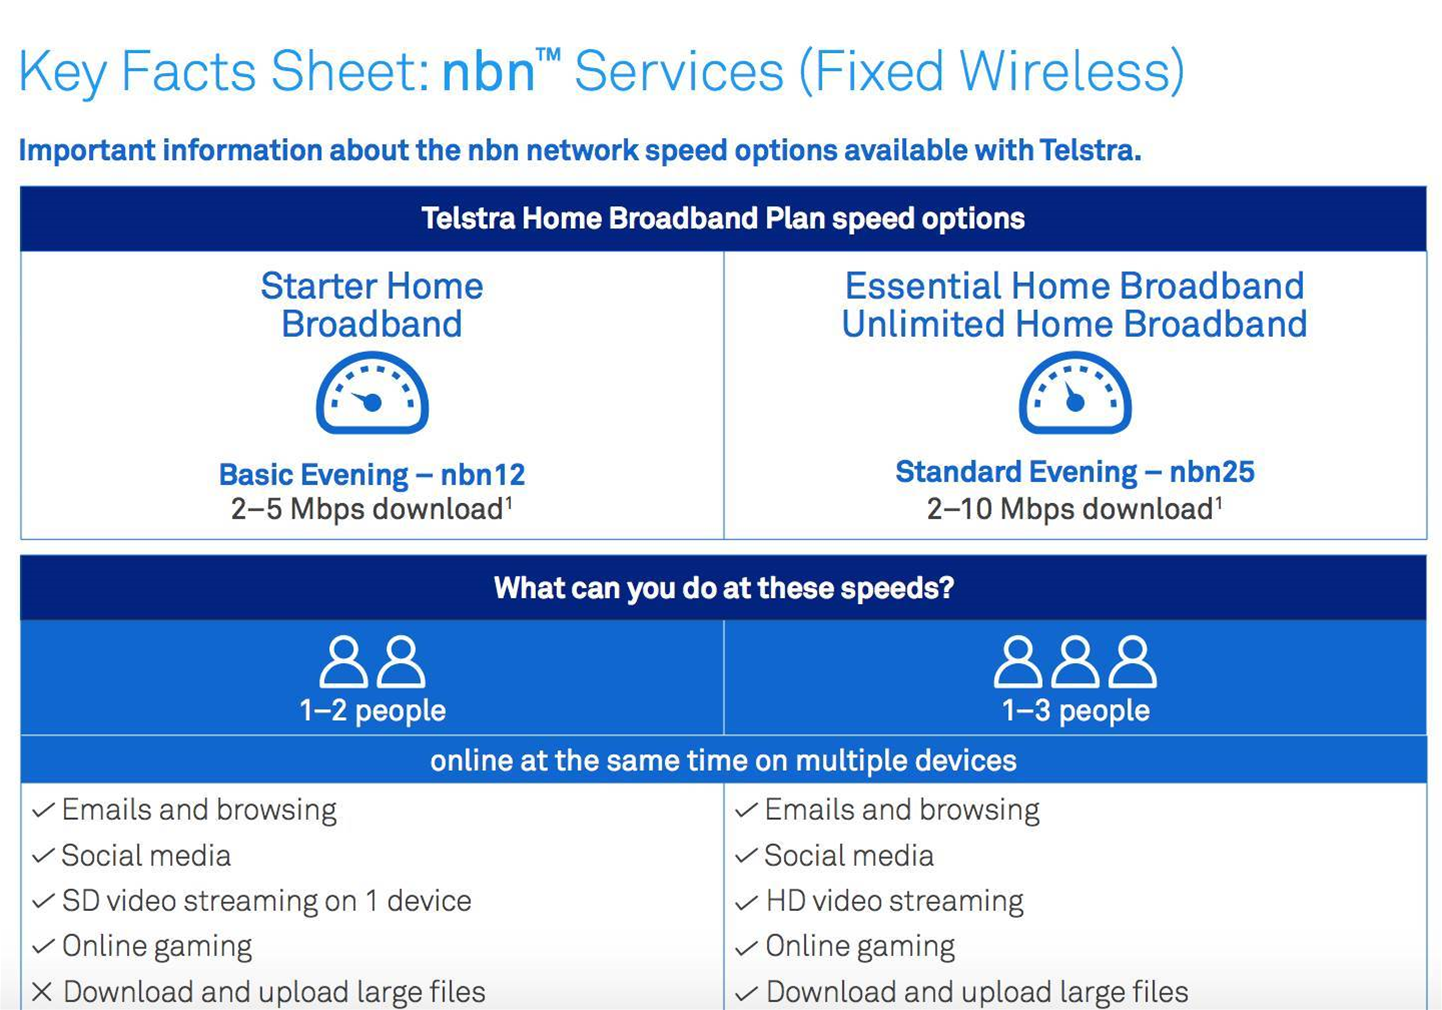 3ddea3b2f5 Telstra restates its NBN fixed wireless speeds - Telco ISP - iTnews